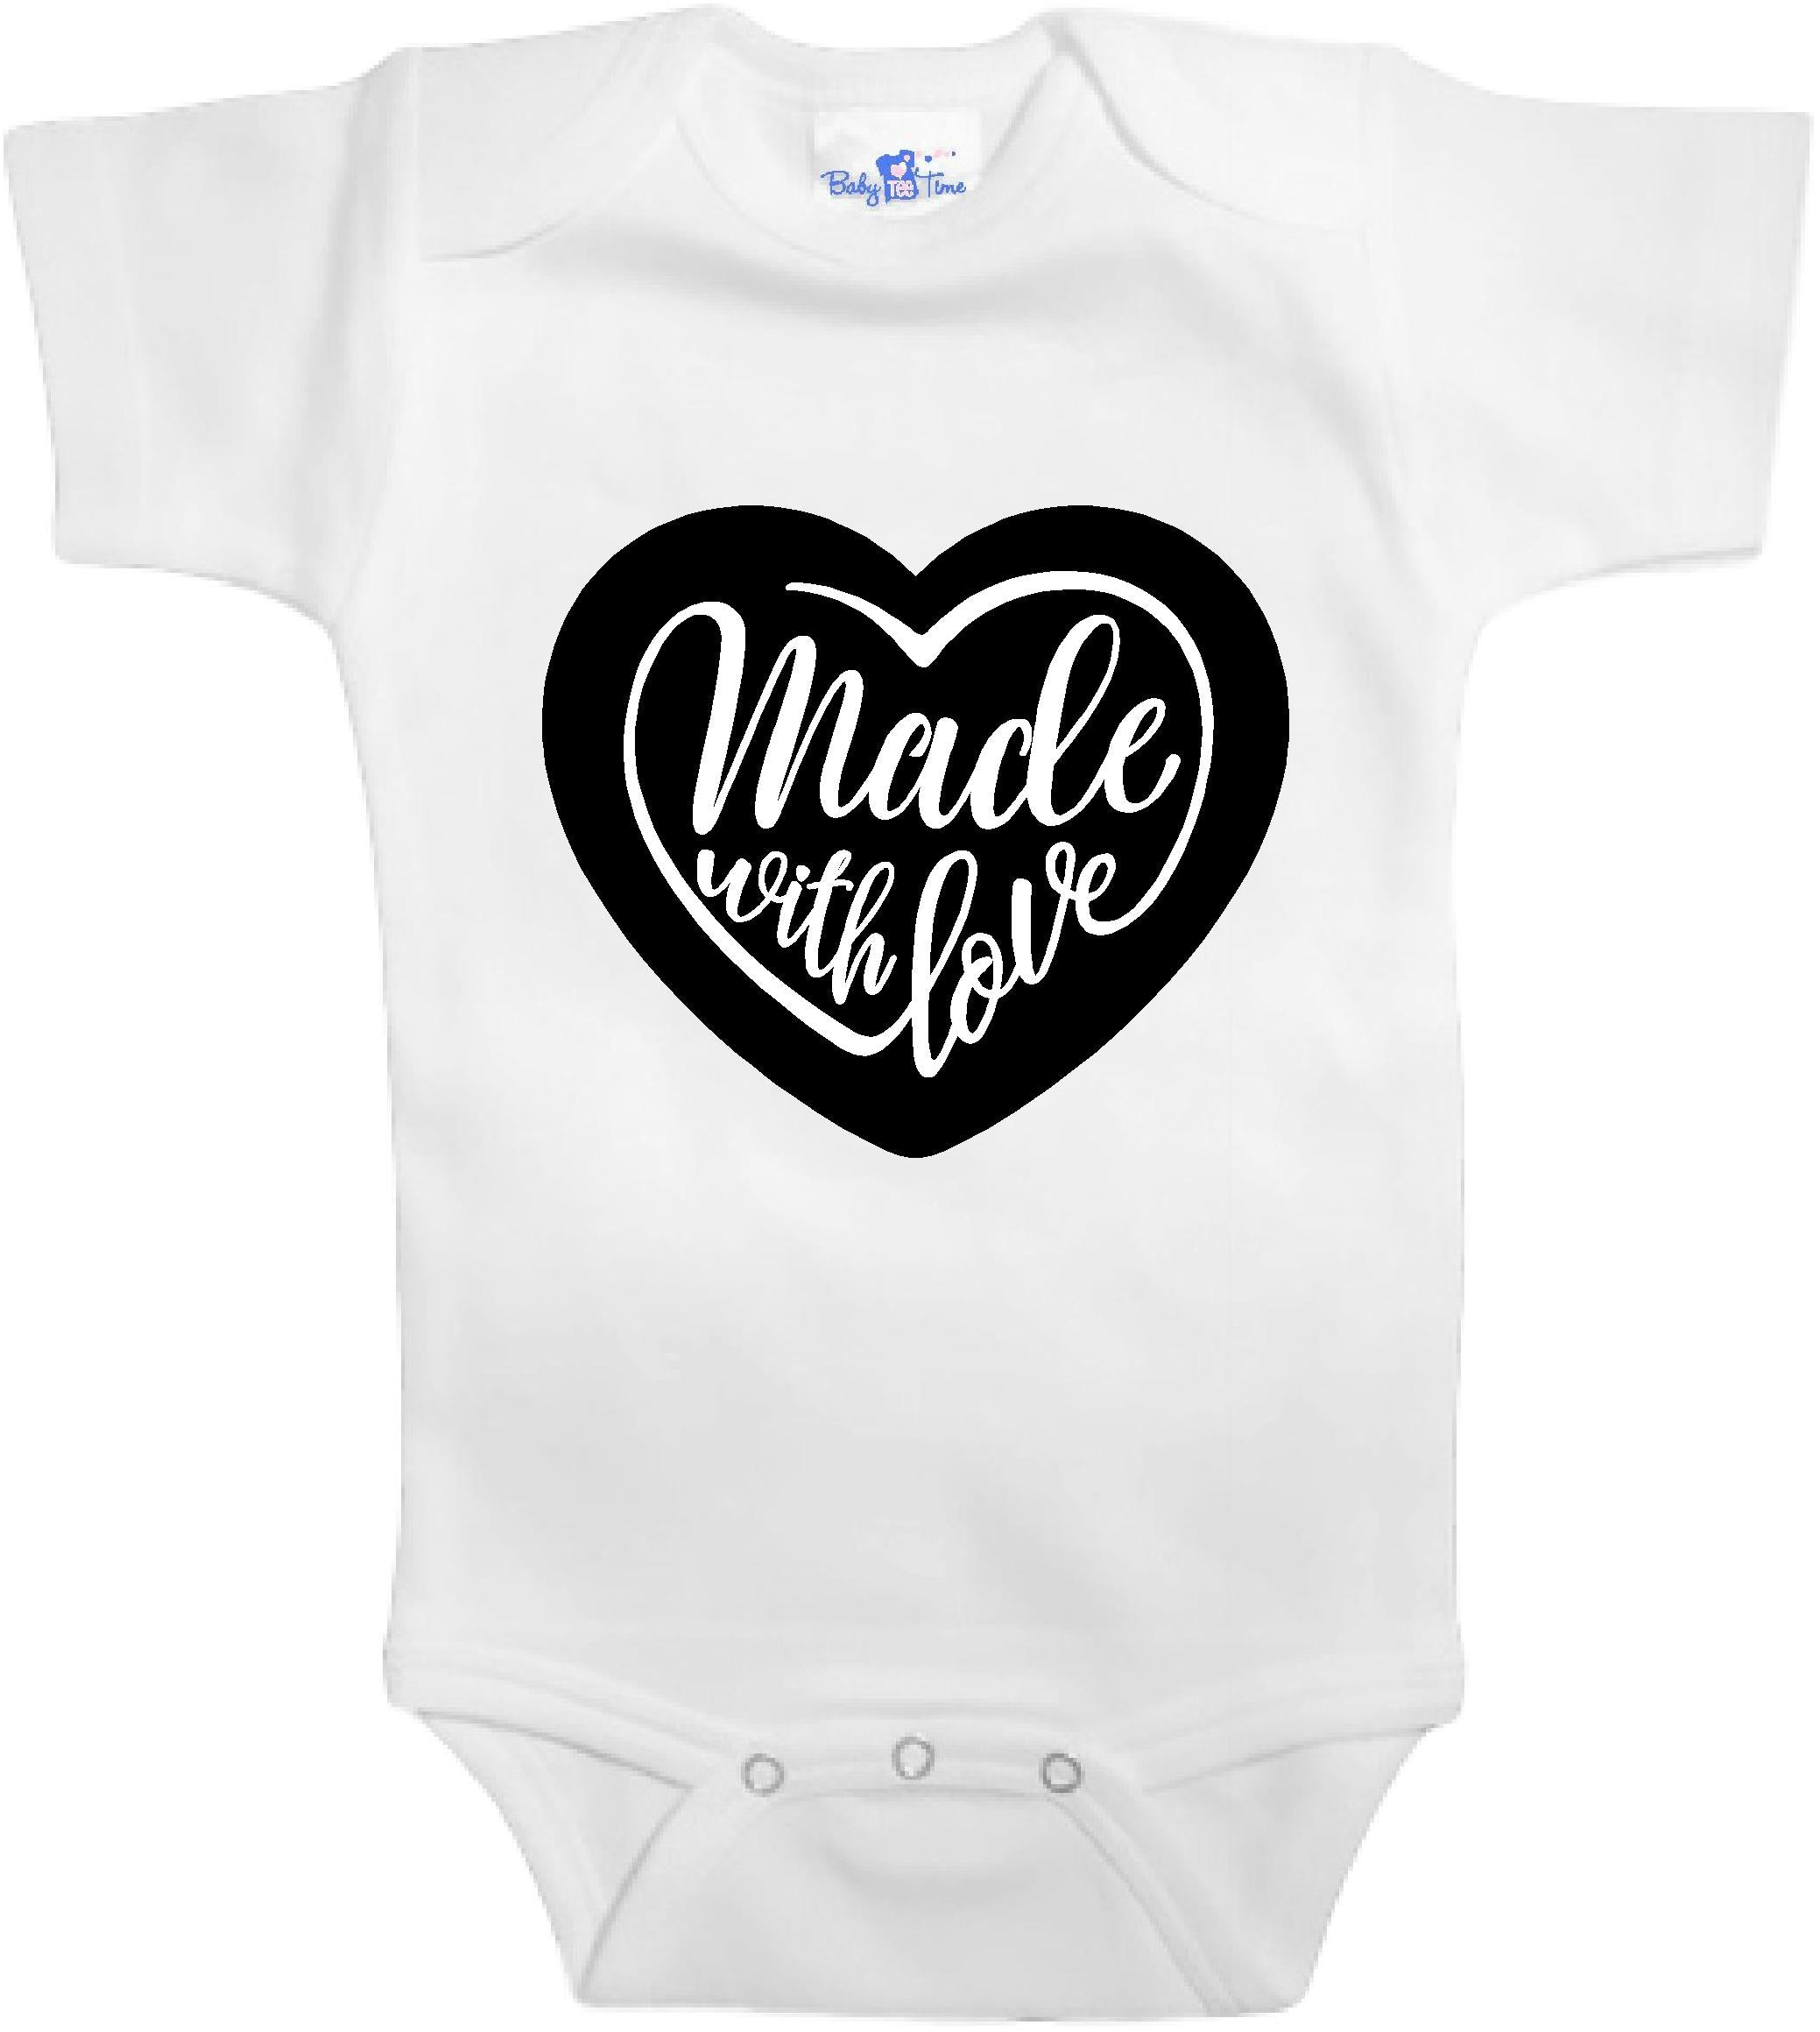 517e88a59bd Adorable Baby Tee Time Made with love popular Baby Onesie